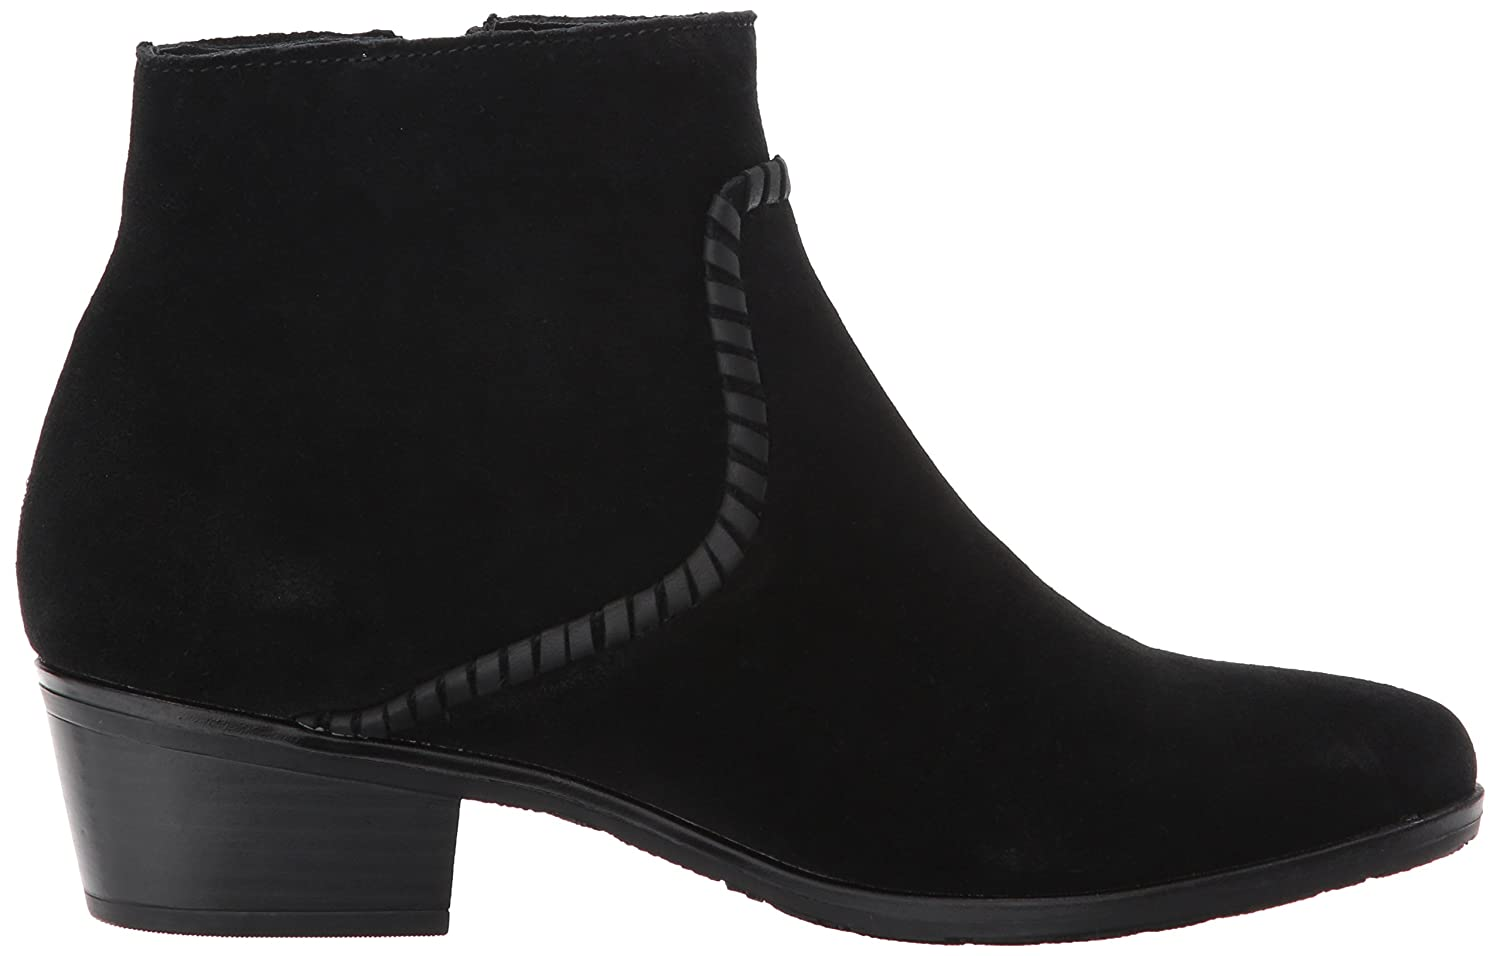 Jack Rogers Women's Dylan Waterproof Ankle Boot B06XMYP4RJ 10 B(M) US|Black Suede